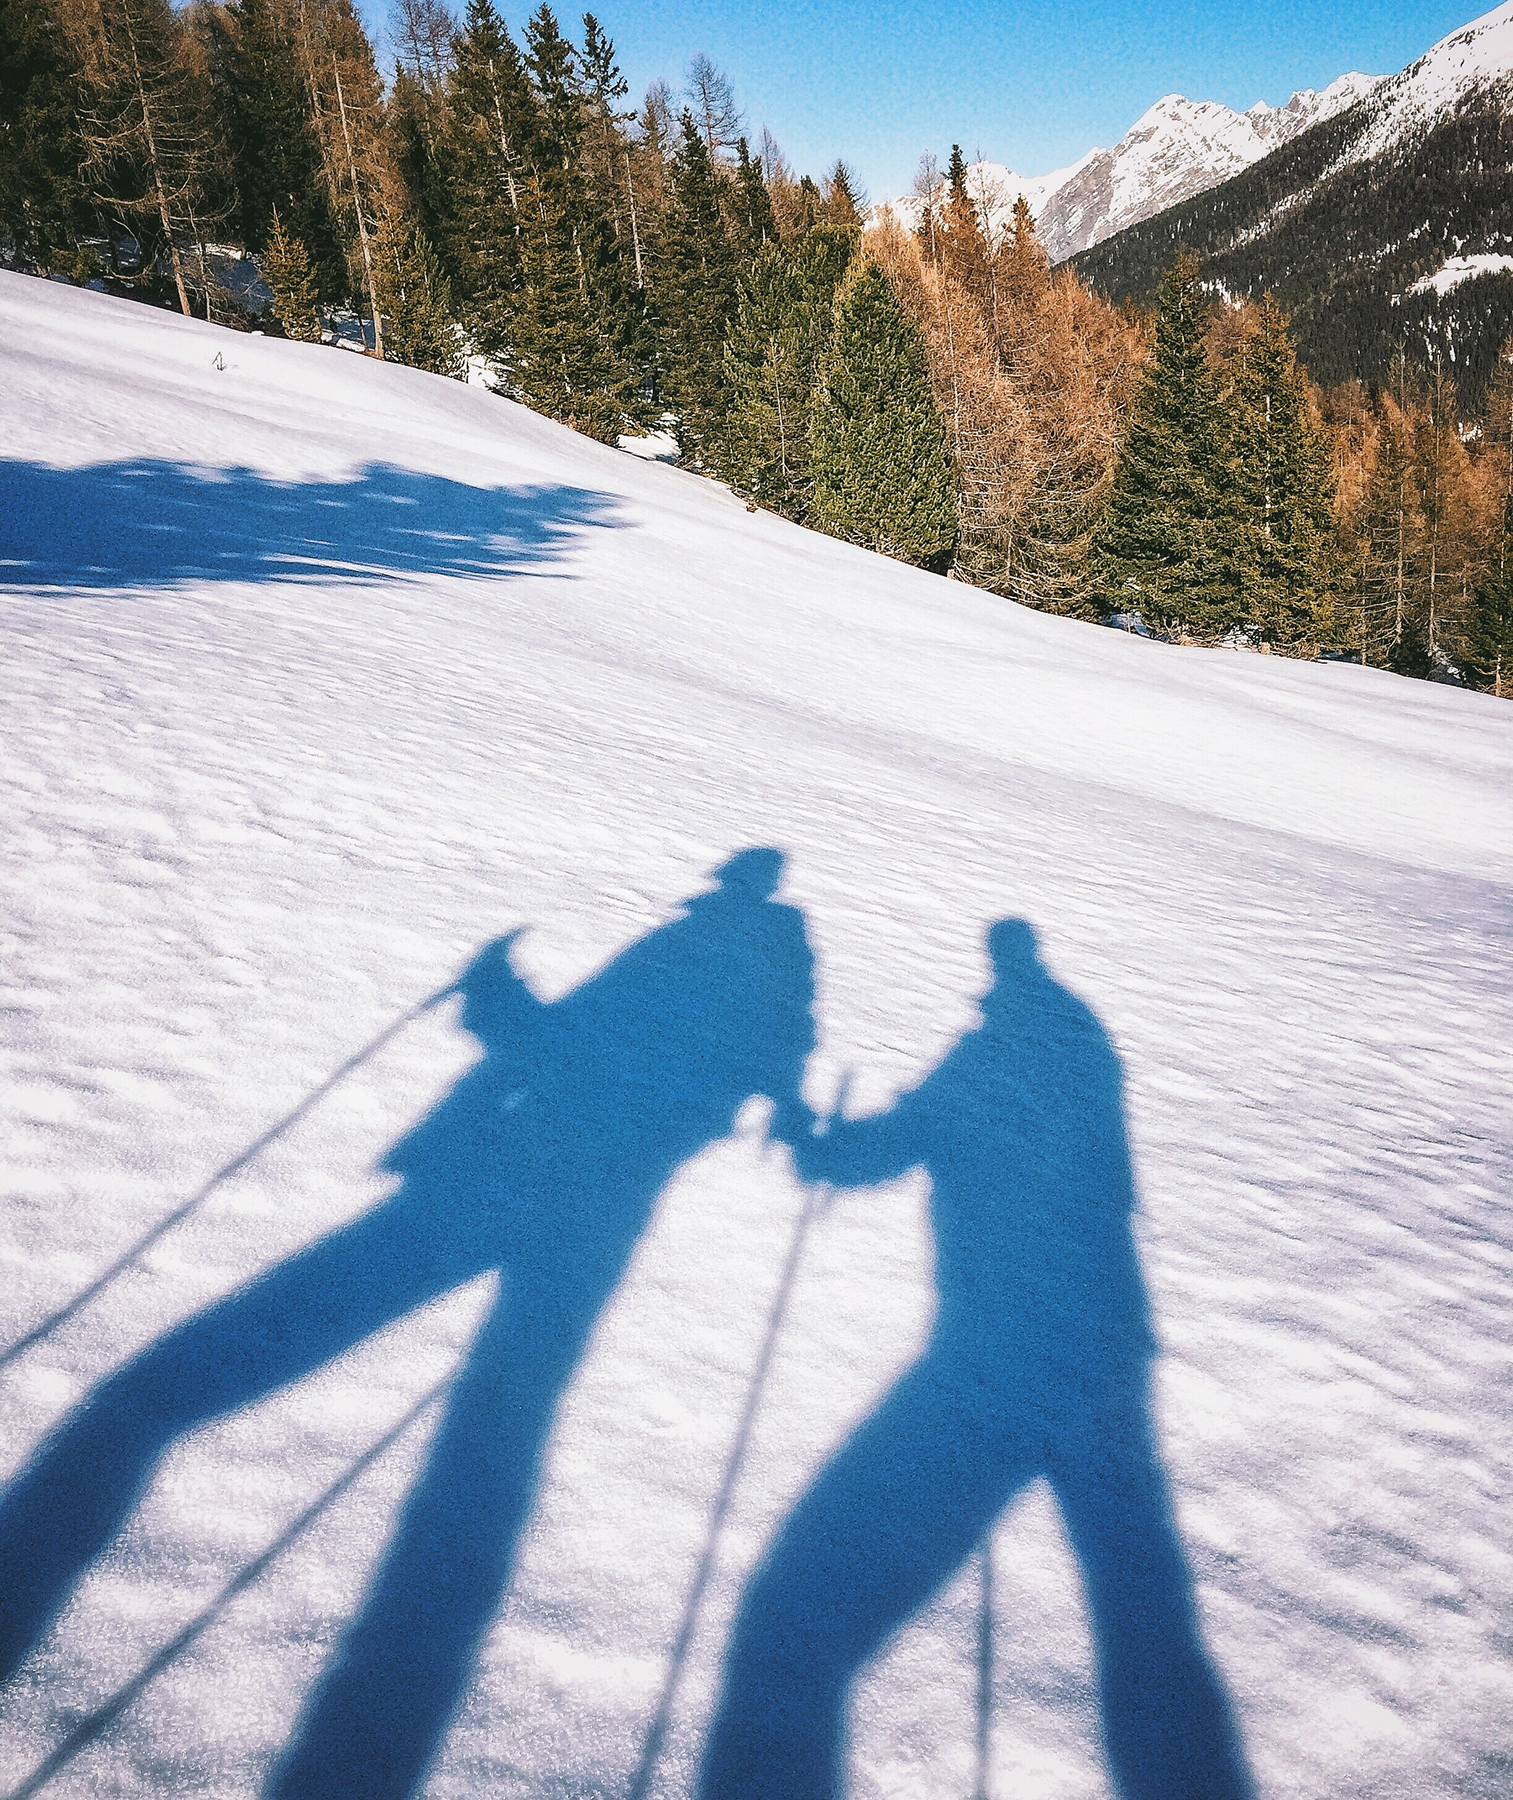 2 skier shadows on the snow